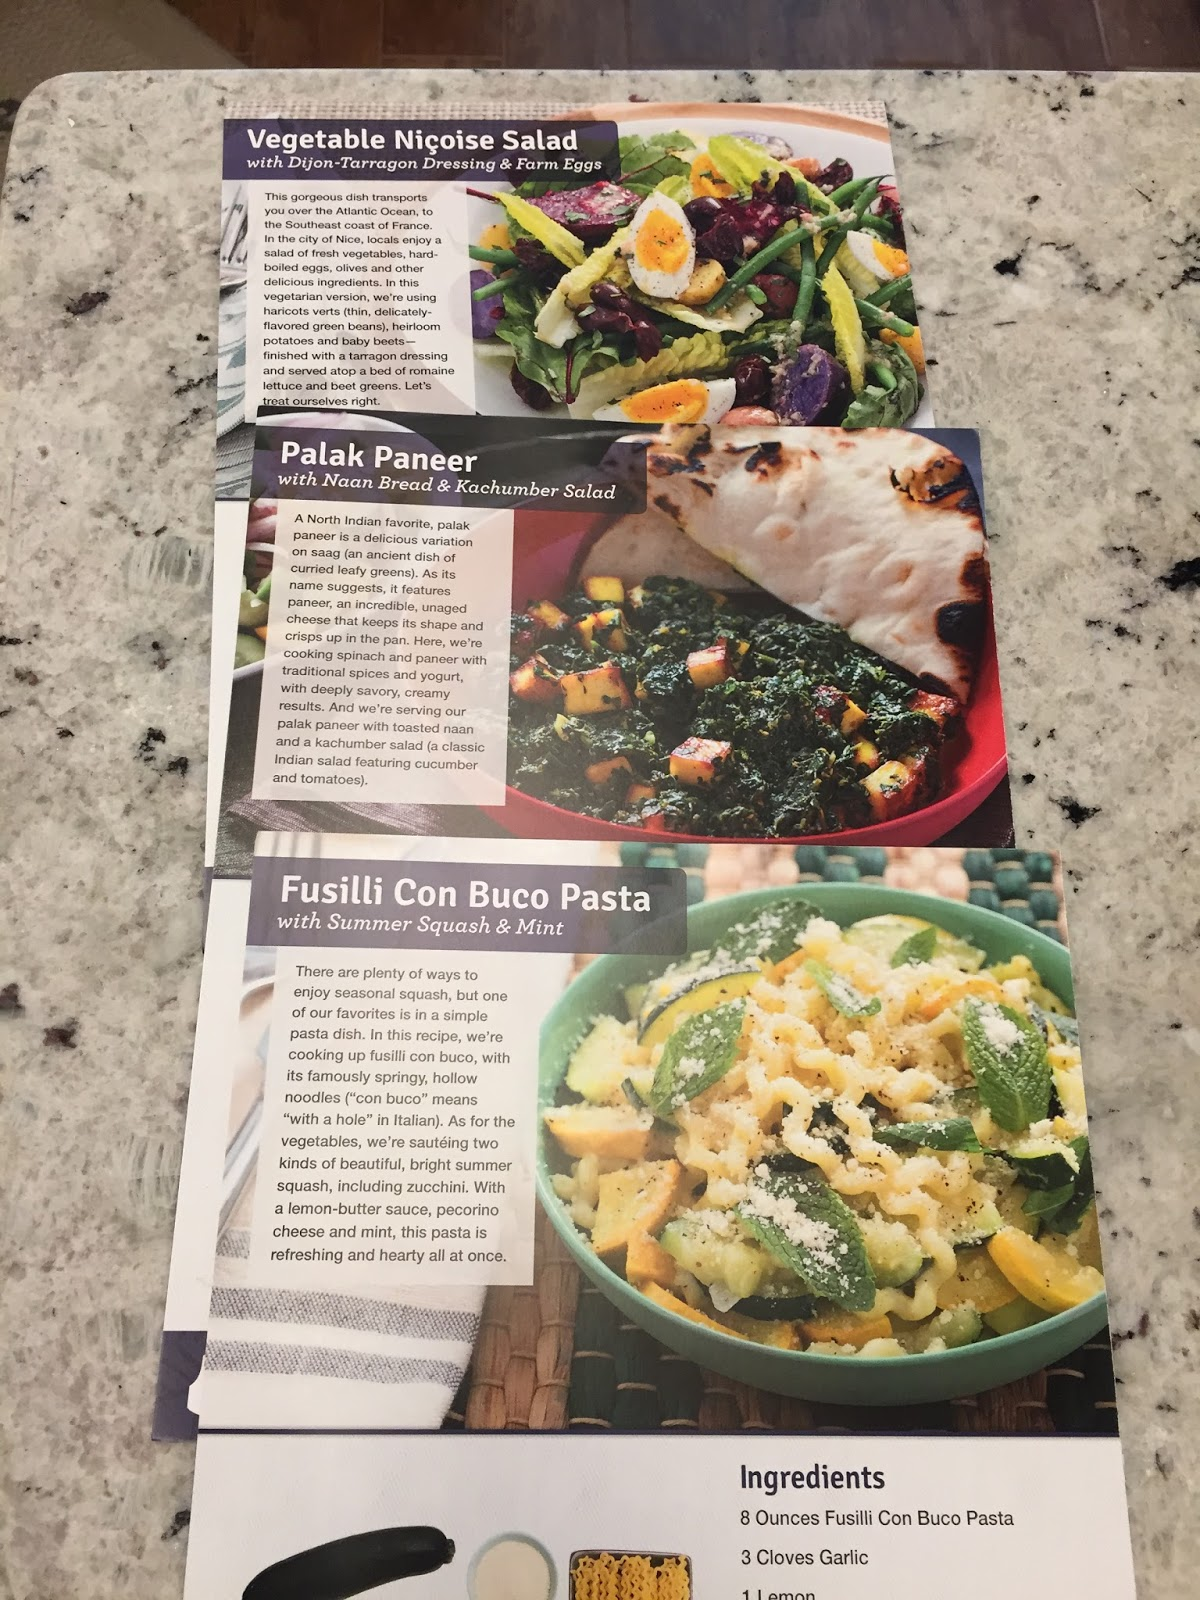 Blue apron vegetarian - I Chose The 2 Person Meal Plan Which Runs 9 99 Per Person The Kids Aren T Old Enough To Eat A Full Portion Yet But If You Get The Family Plan It S 8 74